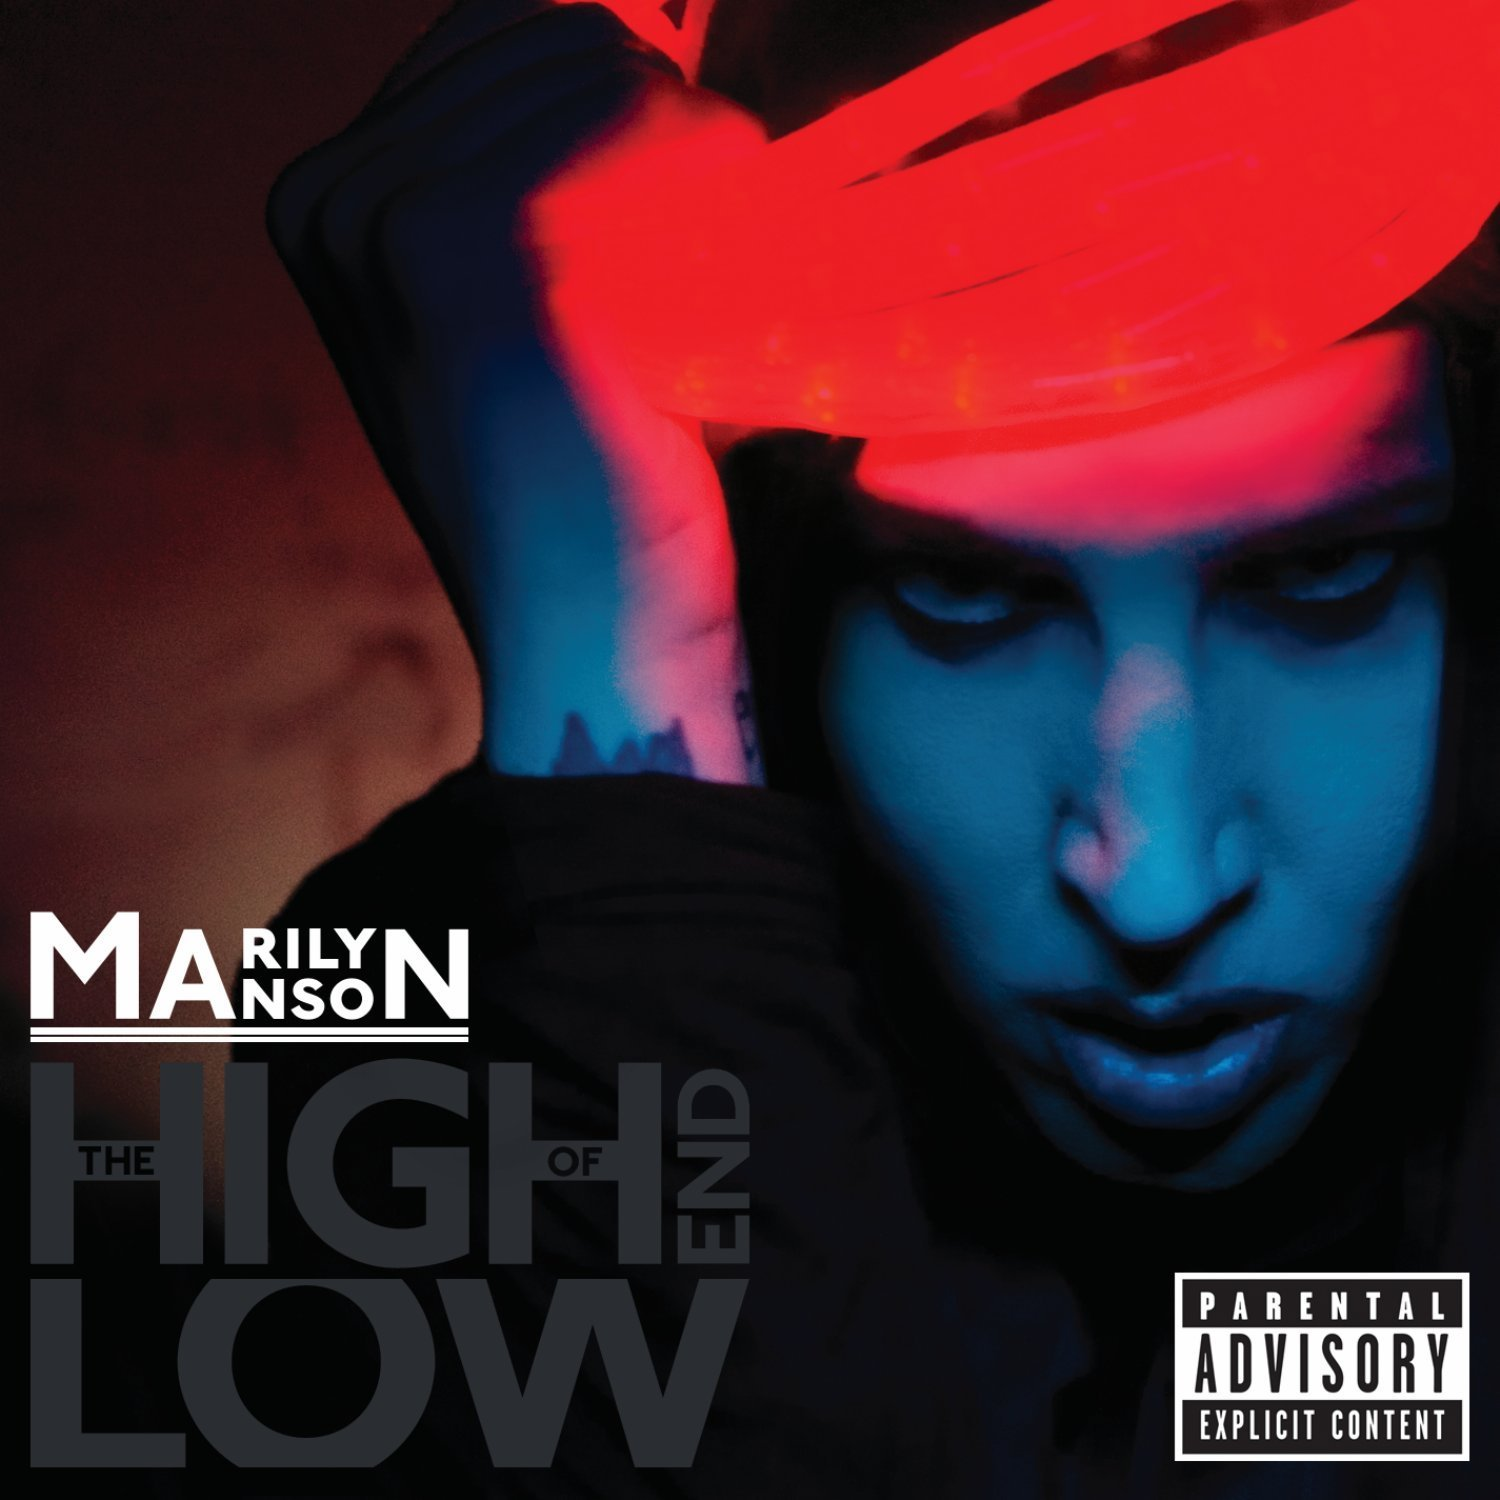 Marilyn Manson: The High End Of Low (2009) Book Cover